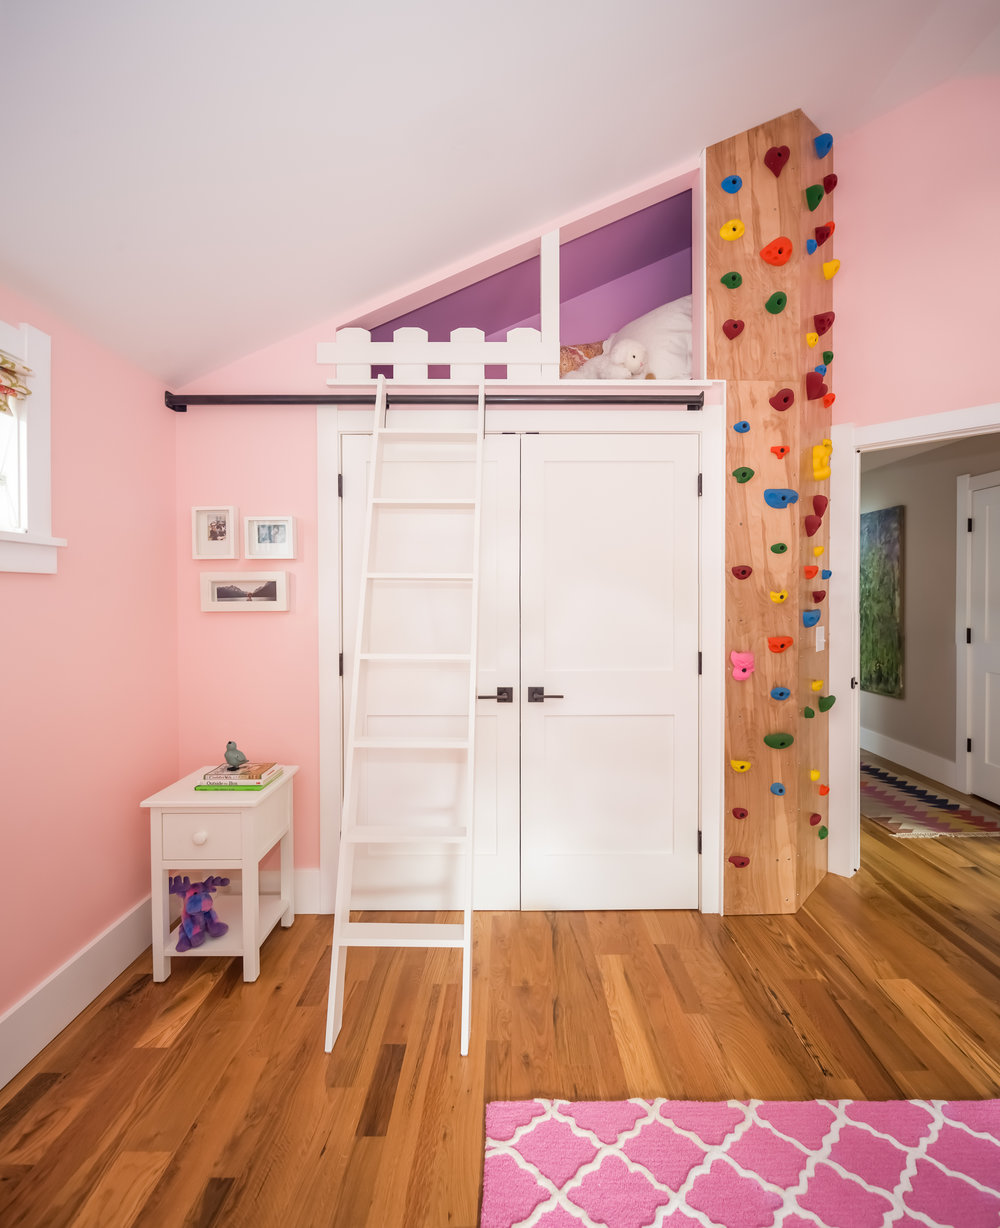 This is a great example of what to do with the space above a closet in a room with a vaulted ceiling!  The client's daughter loves the climbing wall and the reading nook.  The ladder slides to the side when not in use.